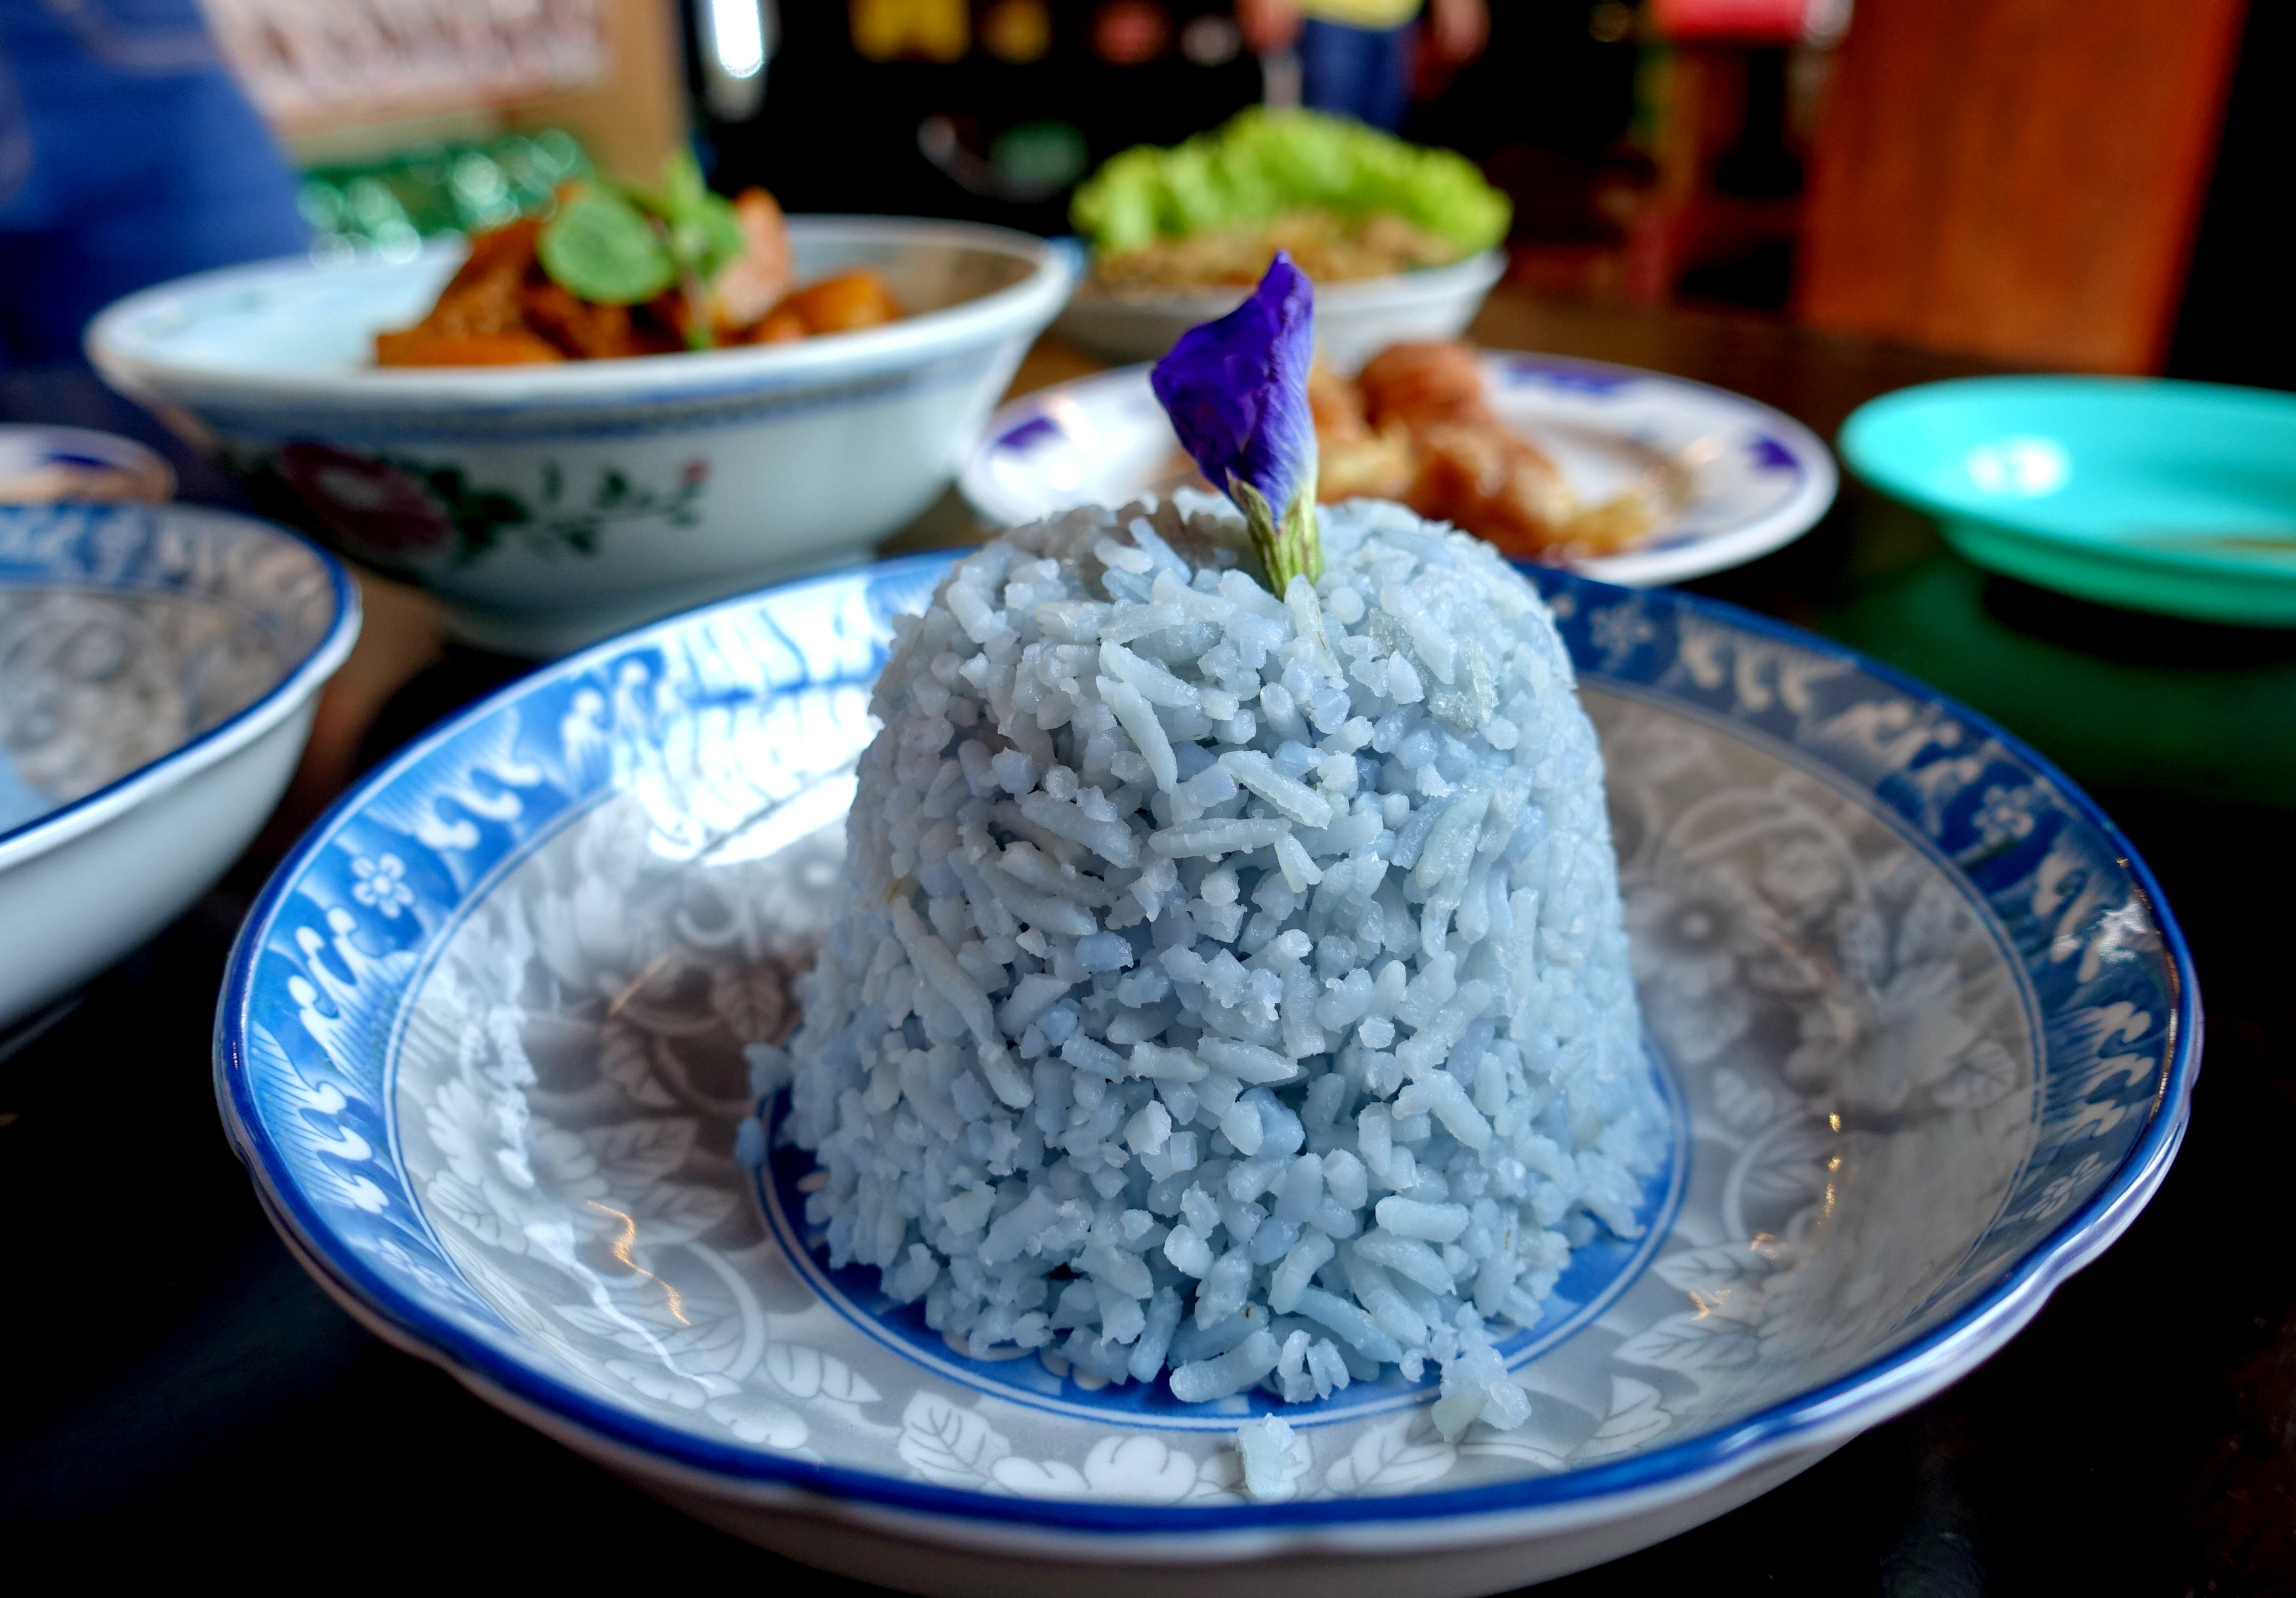 Penang] Nyonya lunch at Victoria Coffee House - Asia Pacific ...